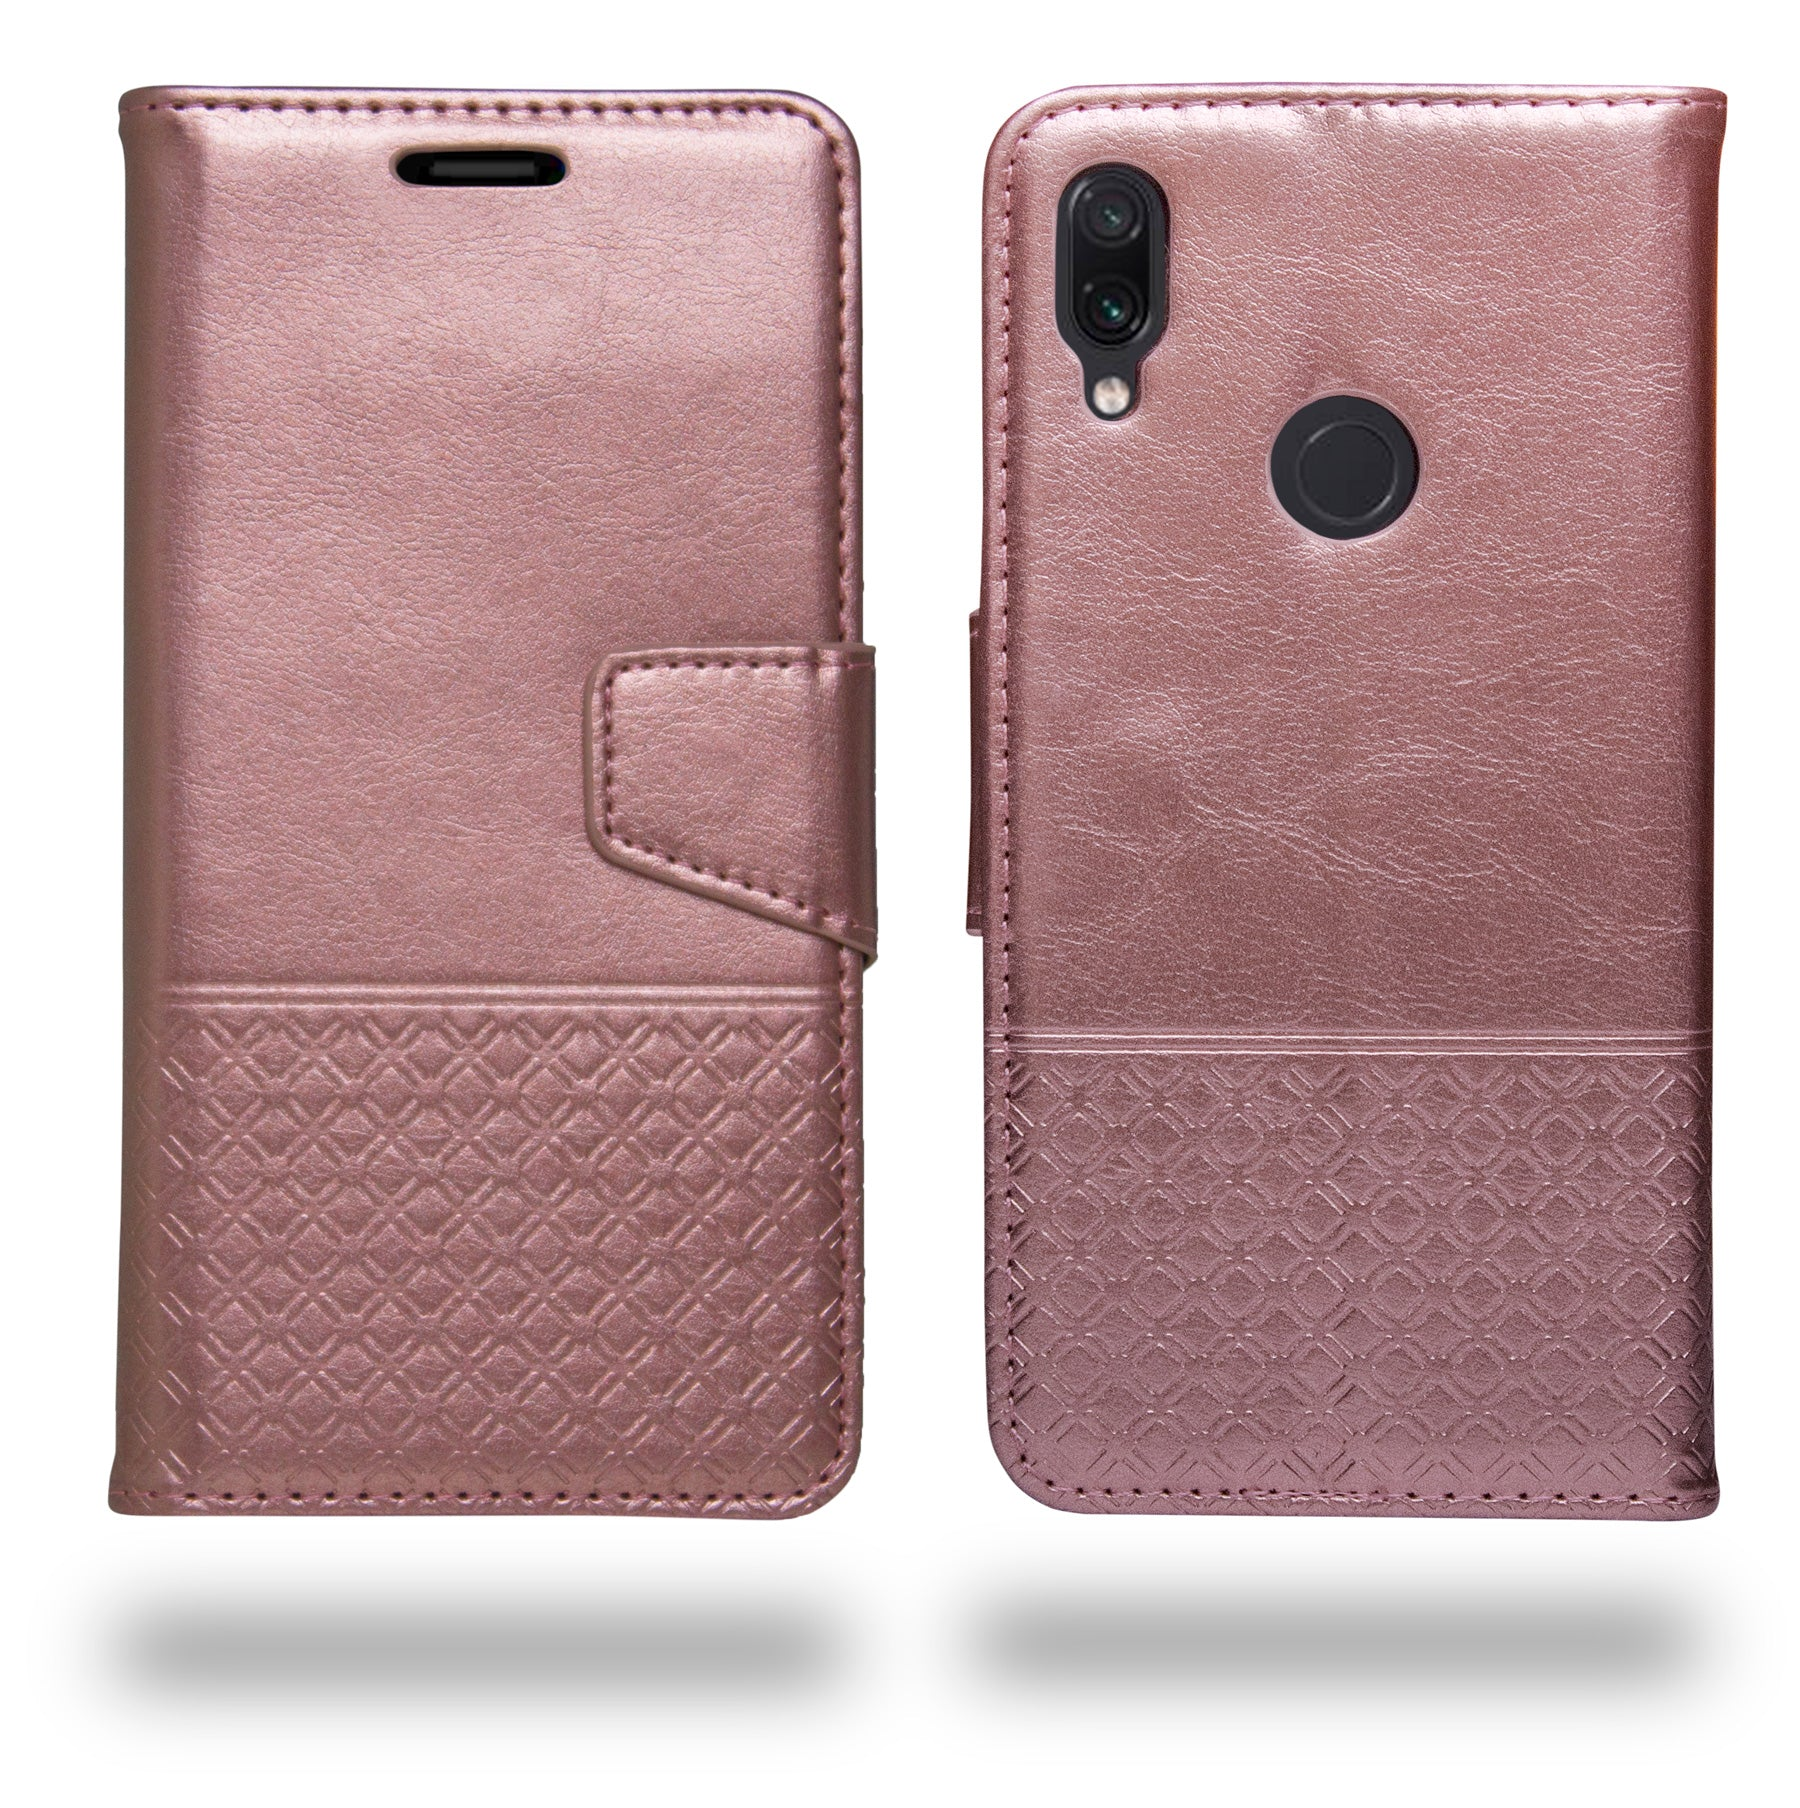 Ceego Luxuria Wallet Flip Cover for Xiaomi Redmi Note 7 / Redmi Note 7 Pro (Carnation Pink)